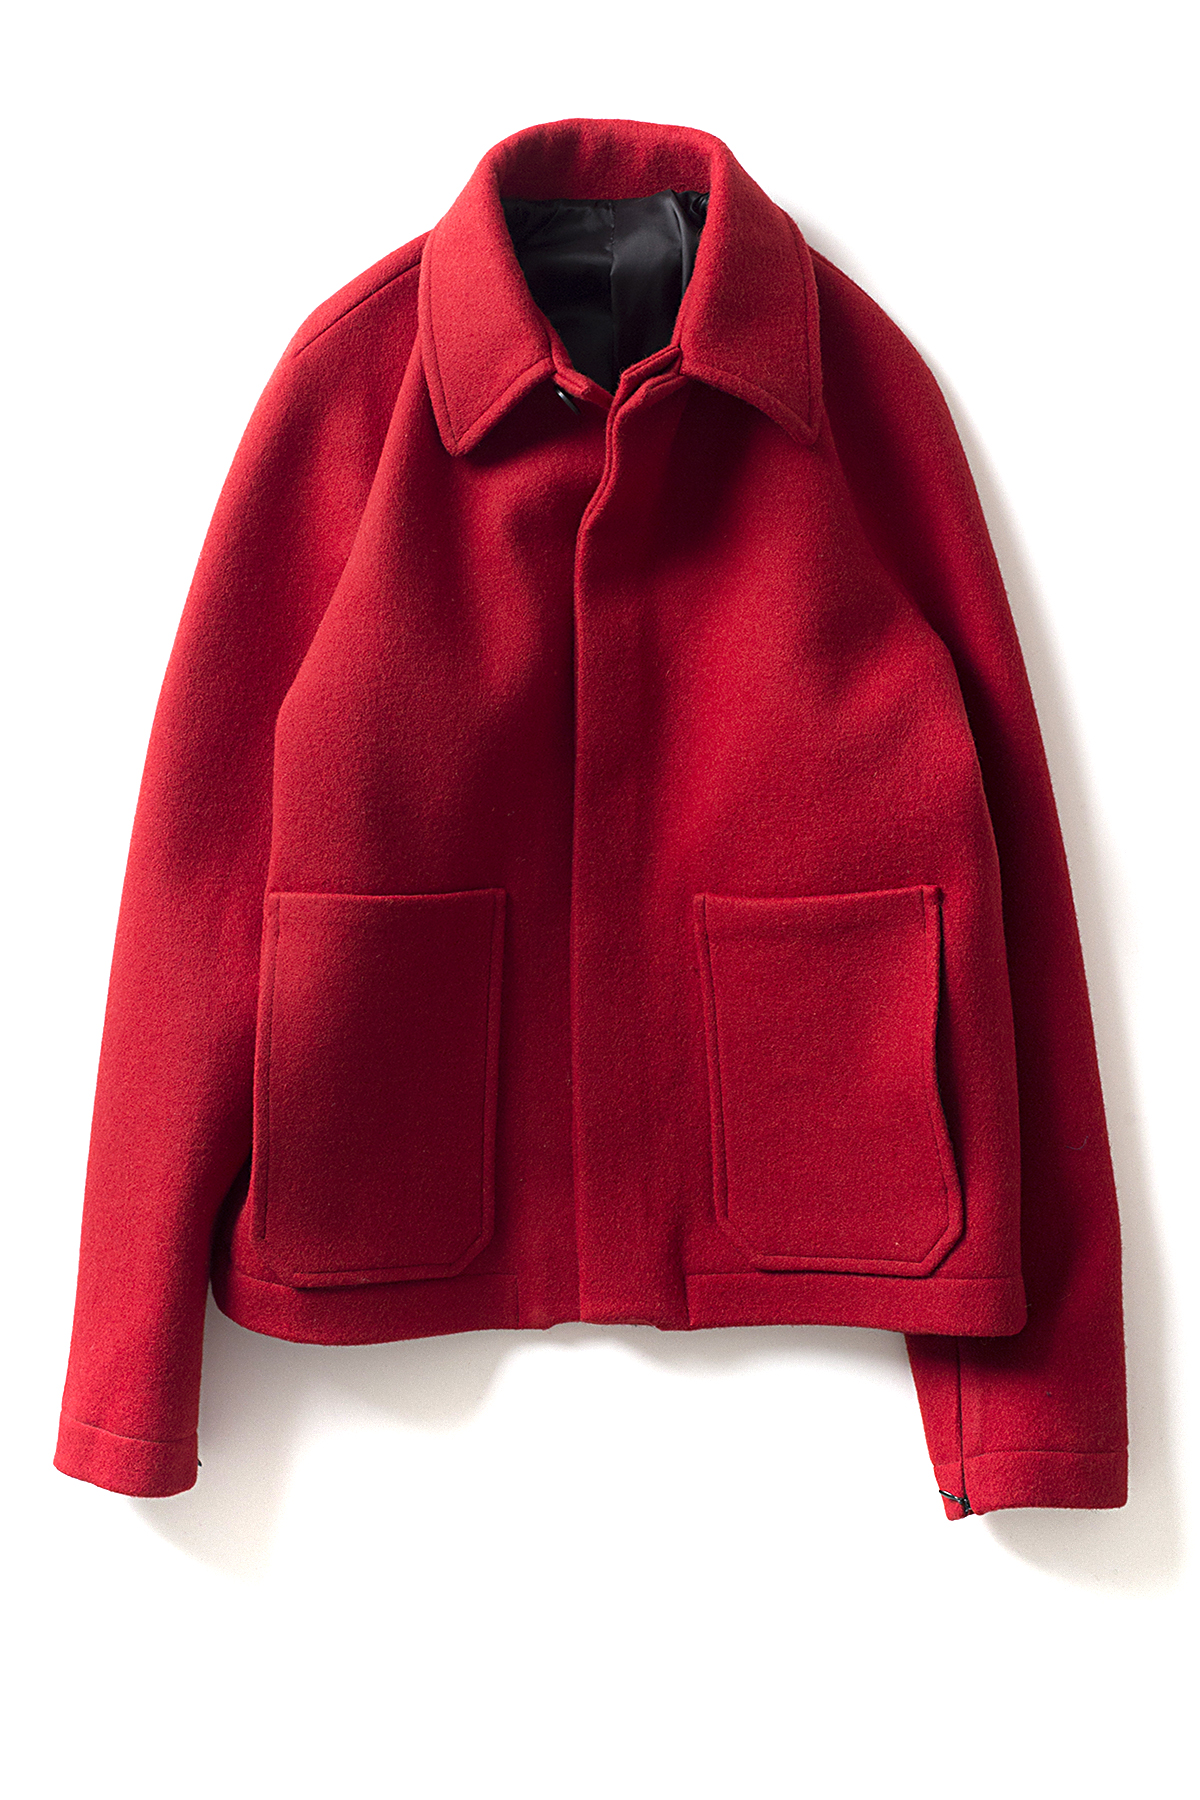 LES INCOMPETENTS : Puffer Back Flight Jacket (Red)